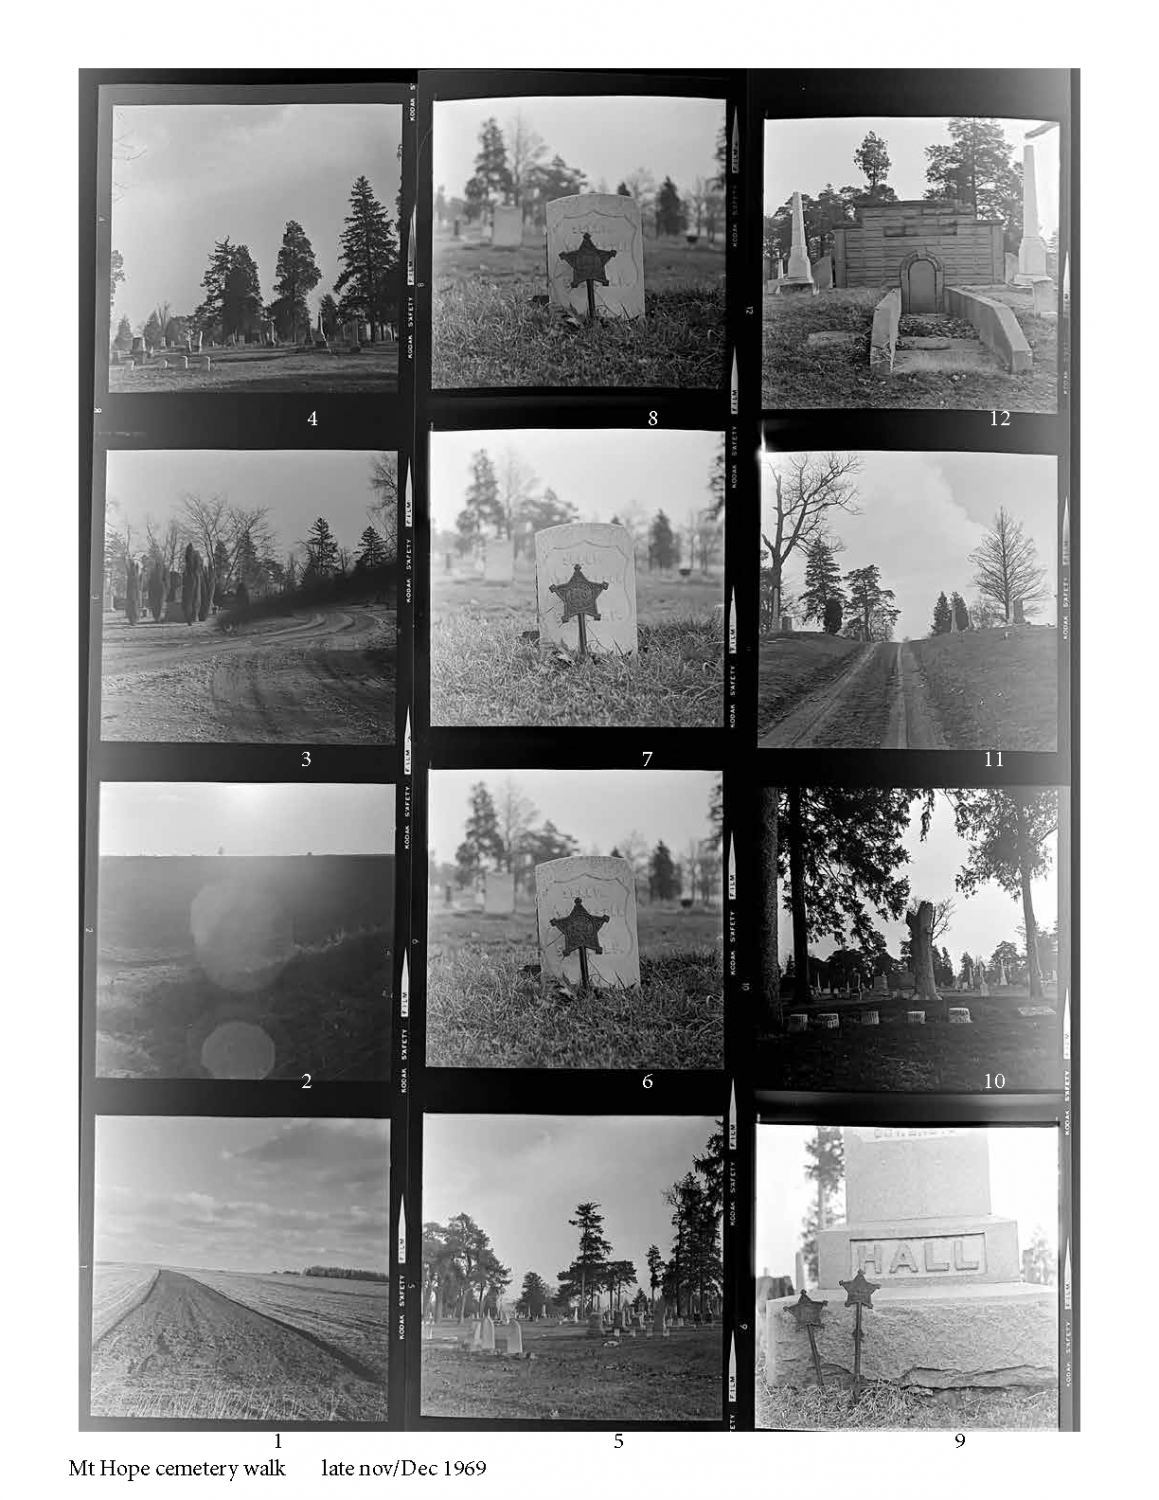 Grid of images of headstones taken in Mt. Hope Cemetery in Champaign, Illinois by artist Bea Nettles. The images were taken while she was an MFA student at the University of Illinois.